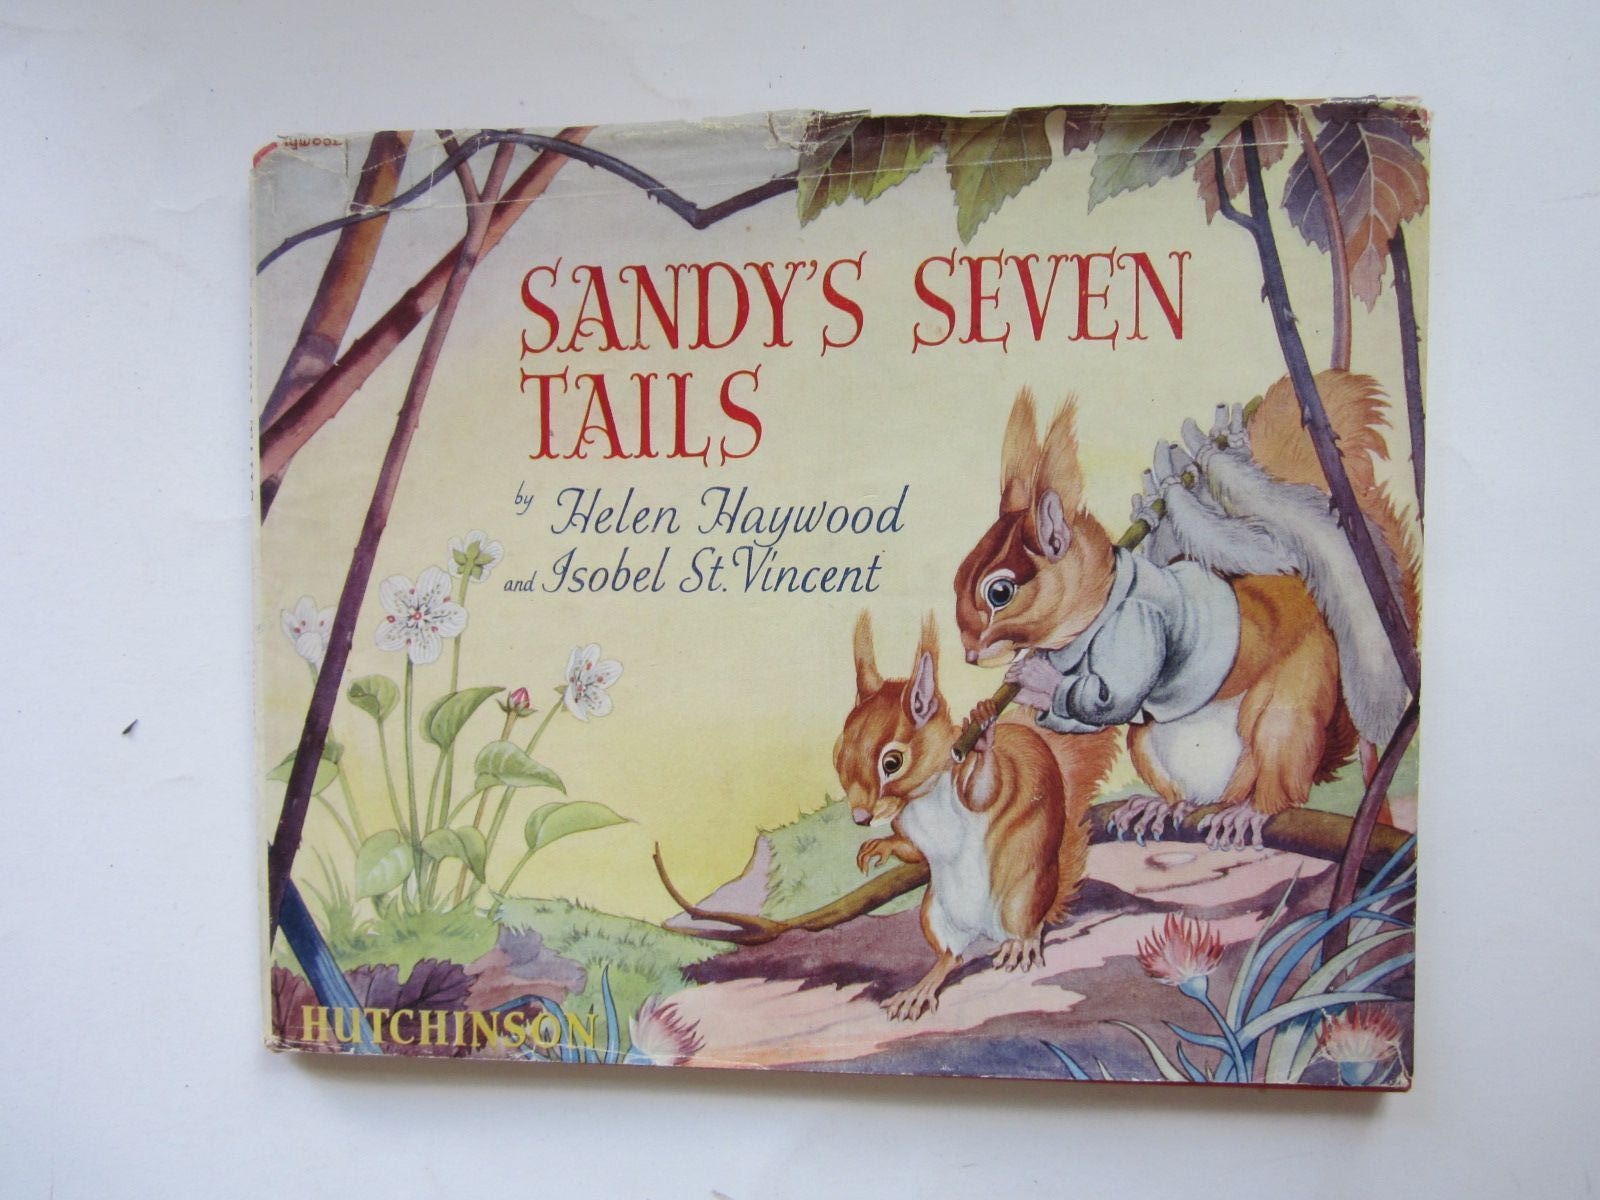 Photo of SANDY'S SEVEN TAILS written by Haywood, Helen St. Vincent, Isobel illustrated by Haywood, Helen St. Vincent, Isobel published by Hutchinson & Co. Ltd (STOCK CODE: 1207677)  for sale by Stella & Rose's Books